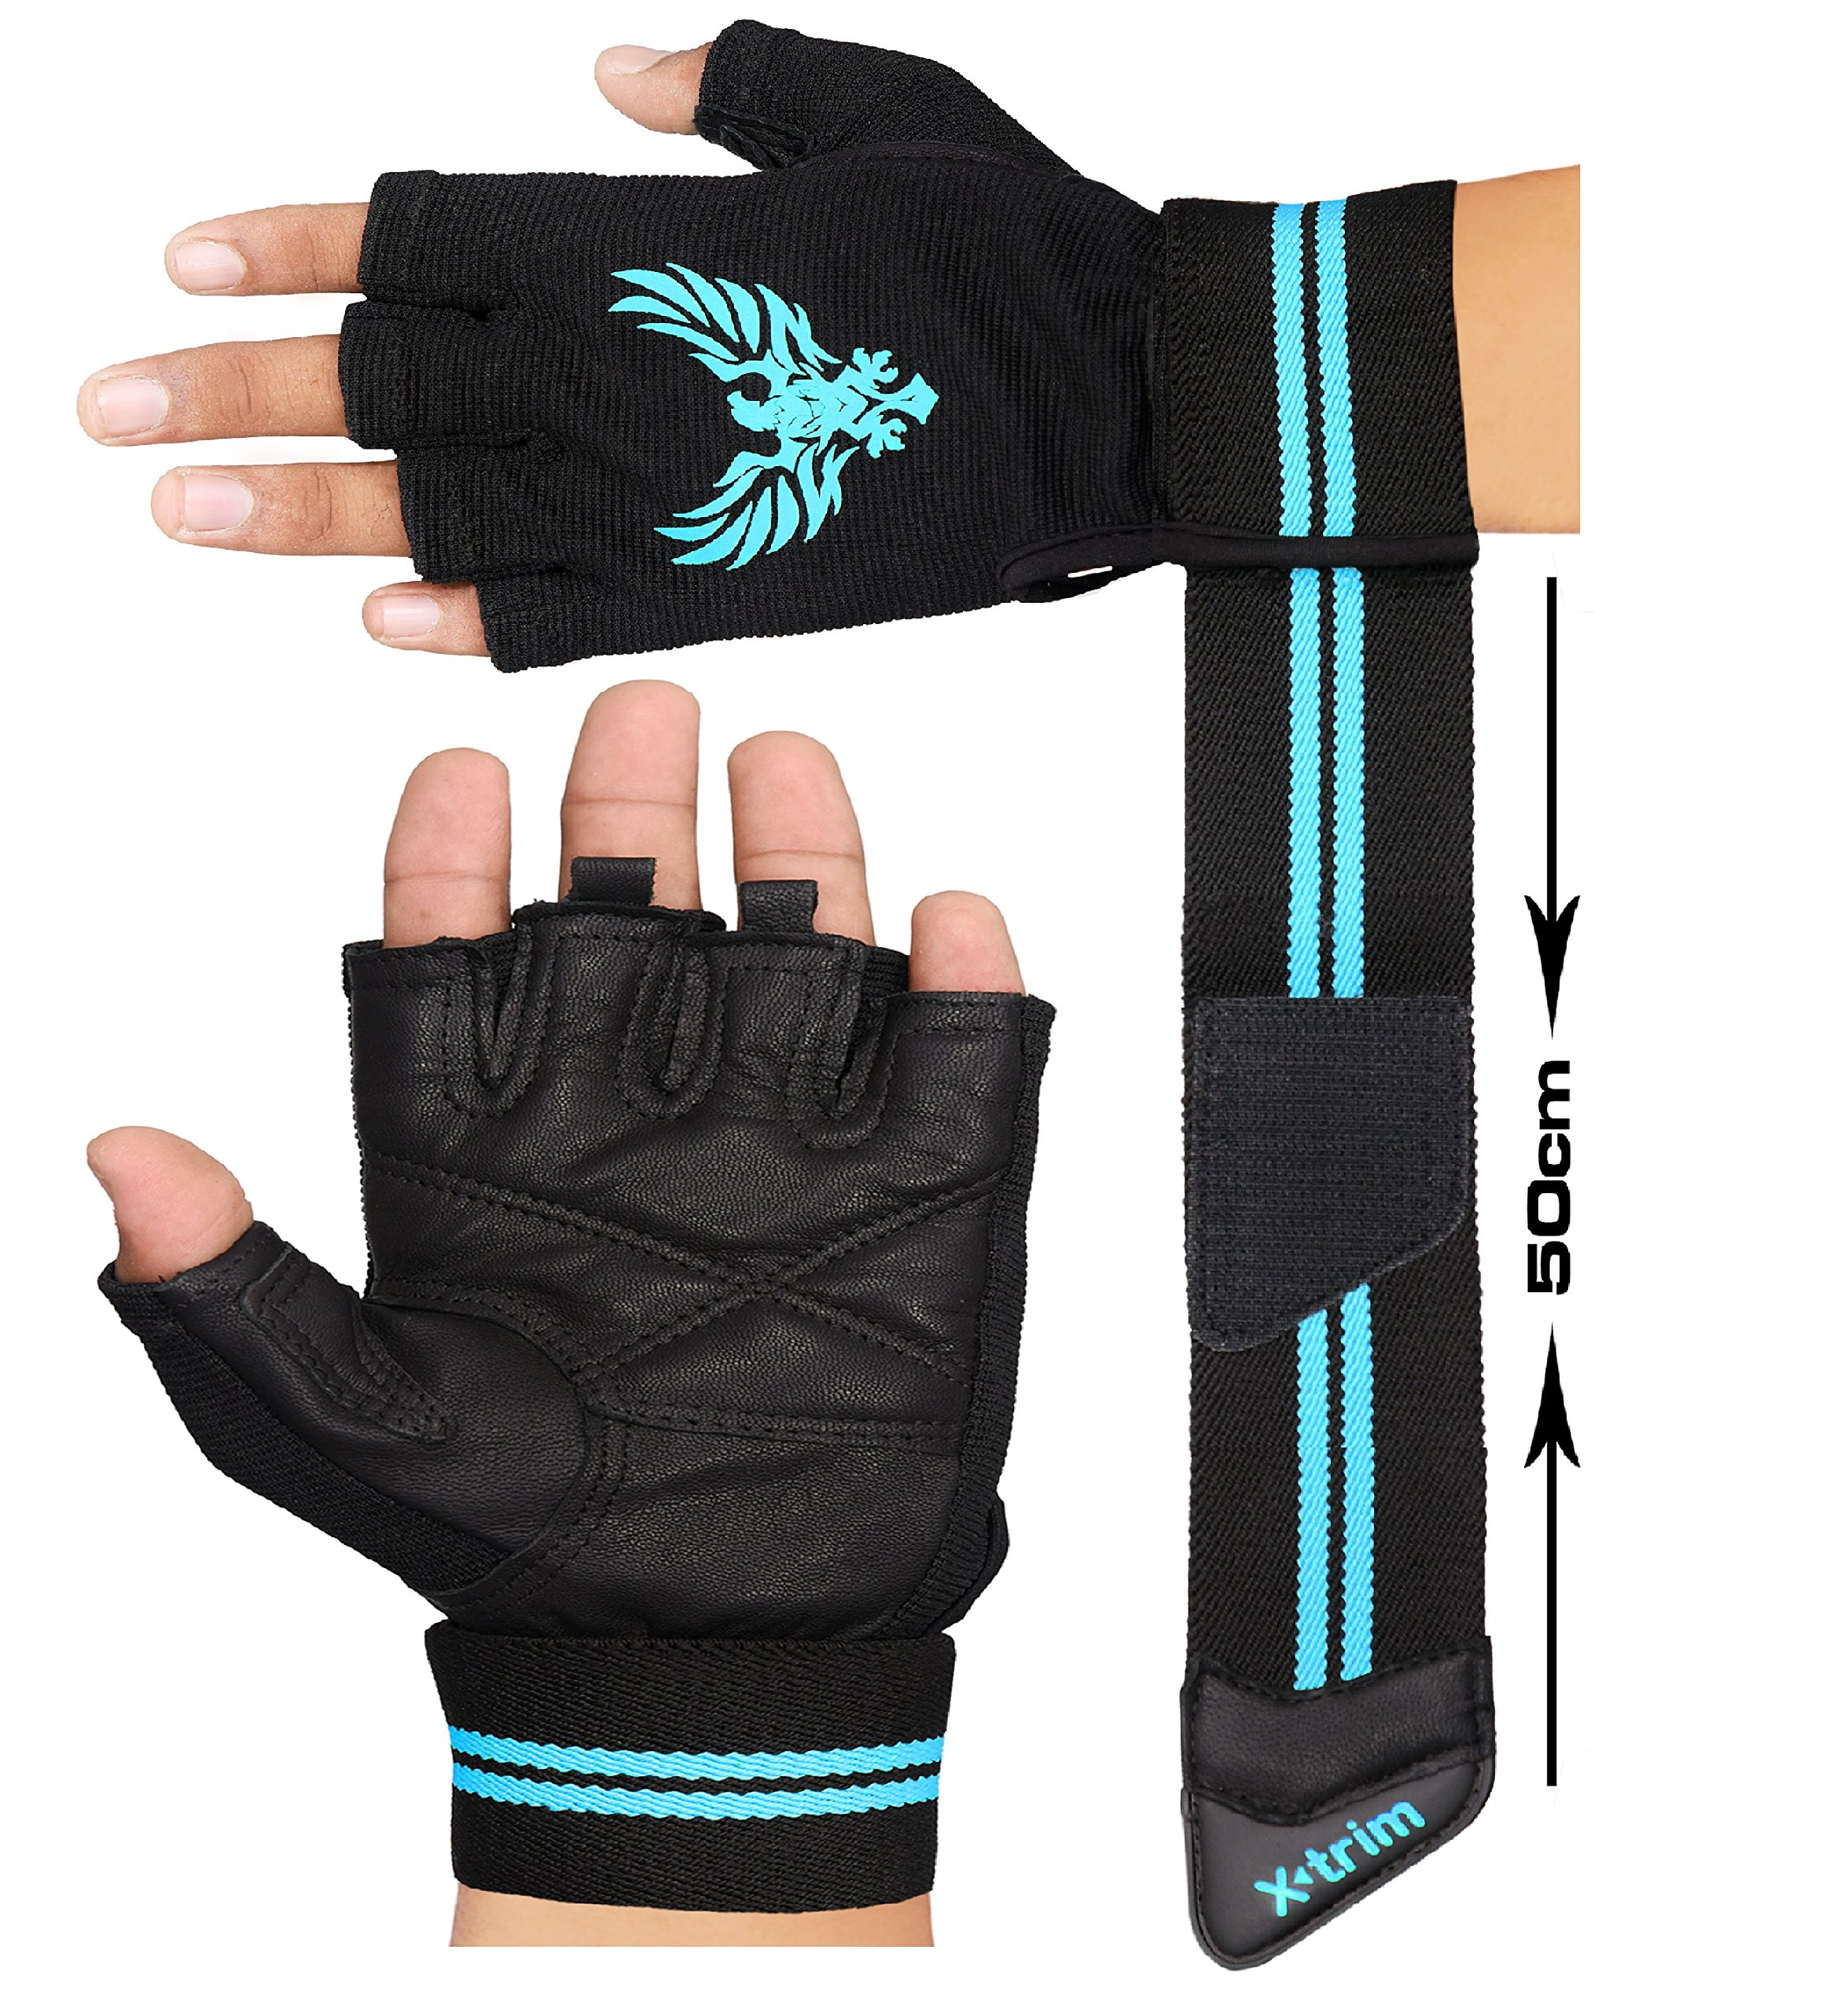 XTRIM X Macho Men's Leather Gym Workout Gloves product image